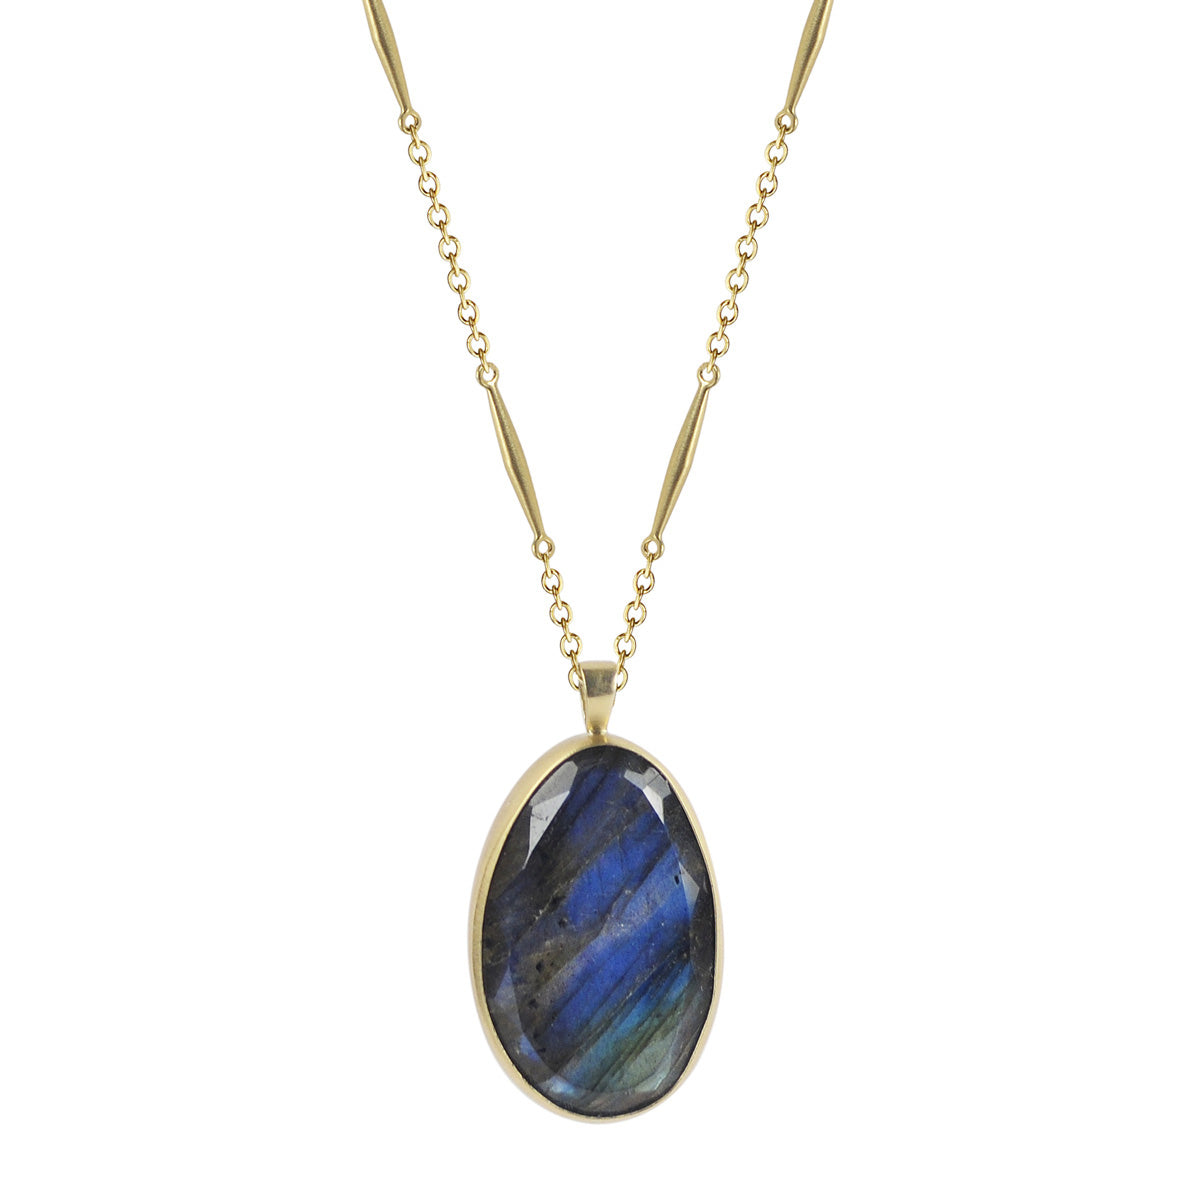 18K Gold Labradorite Oval Pendant on Lure Chain